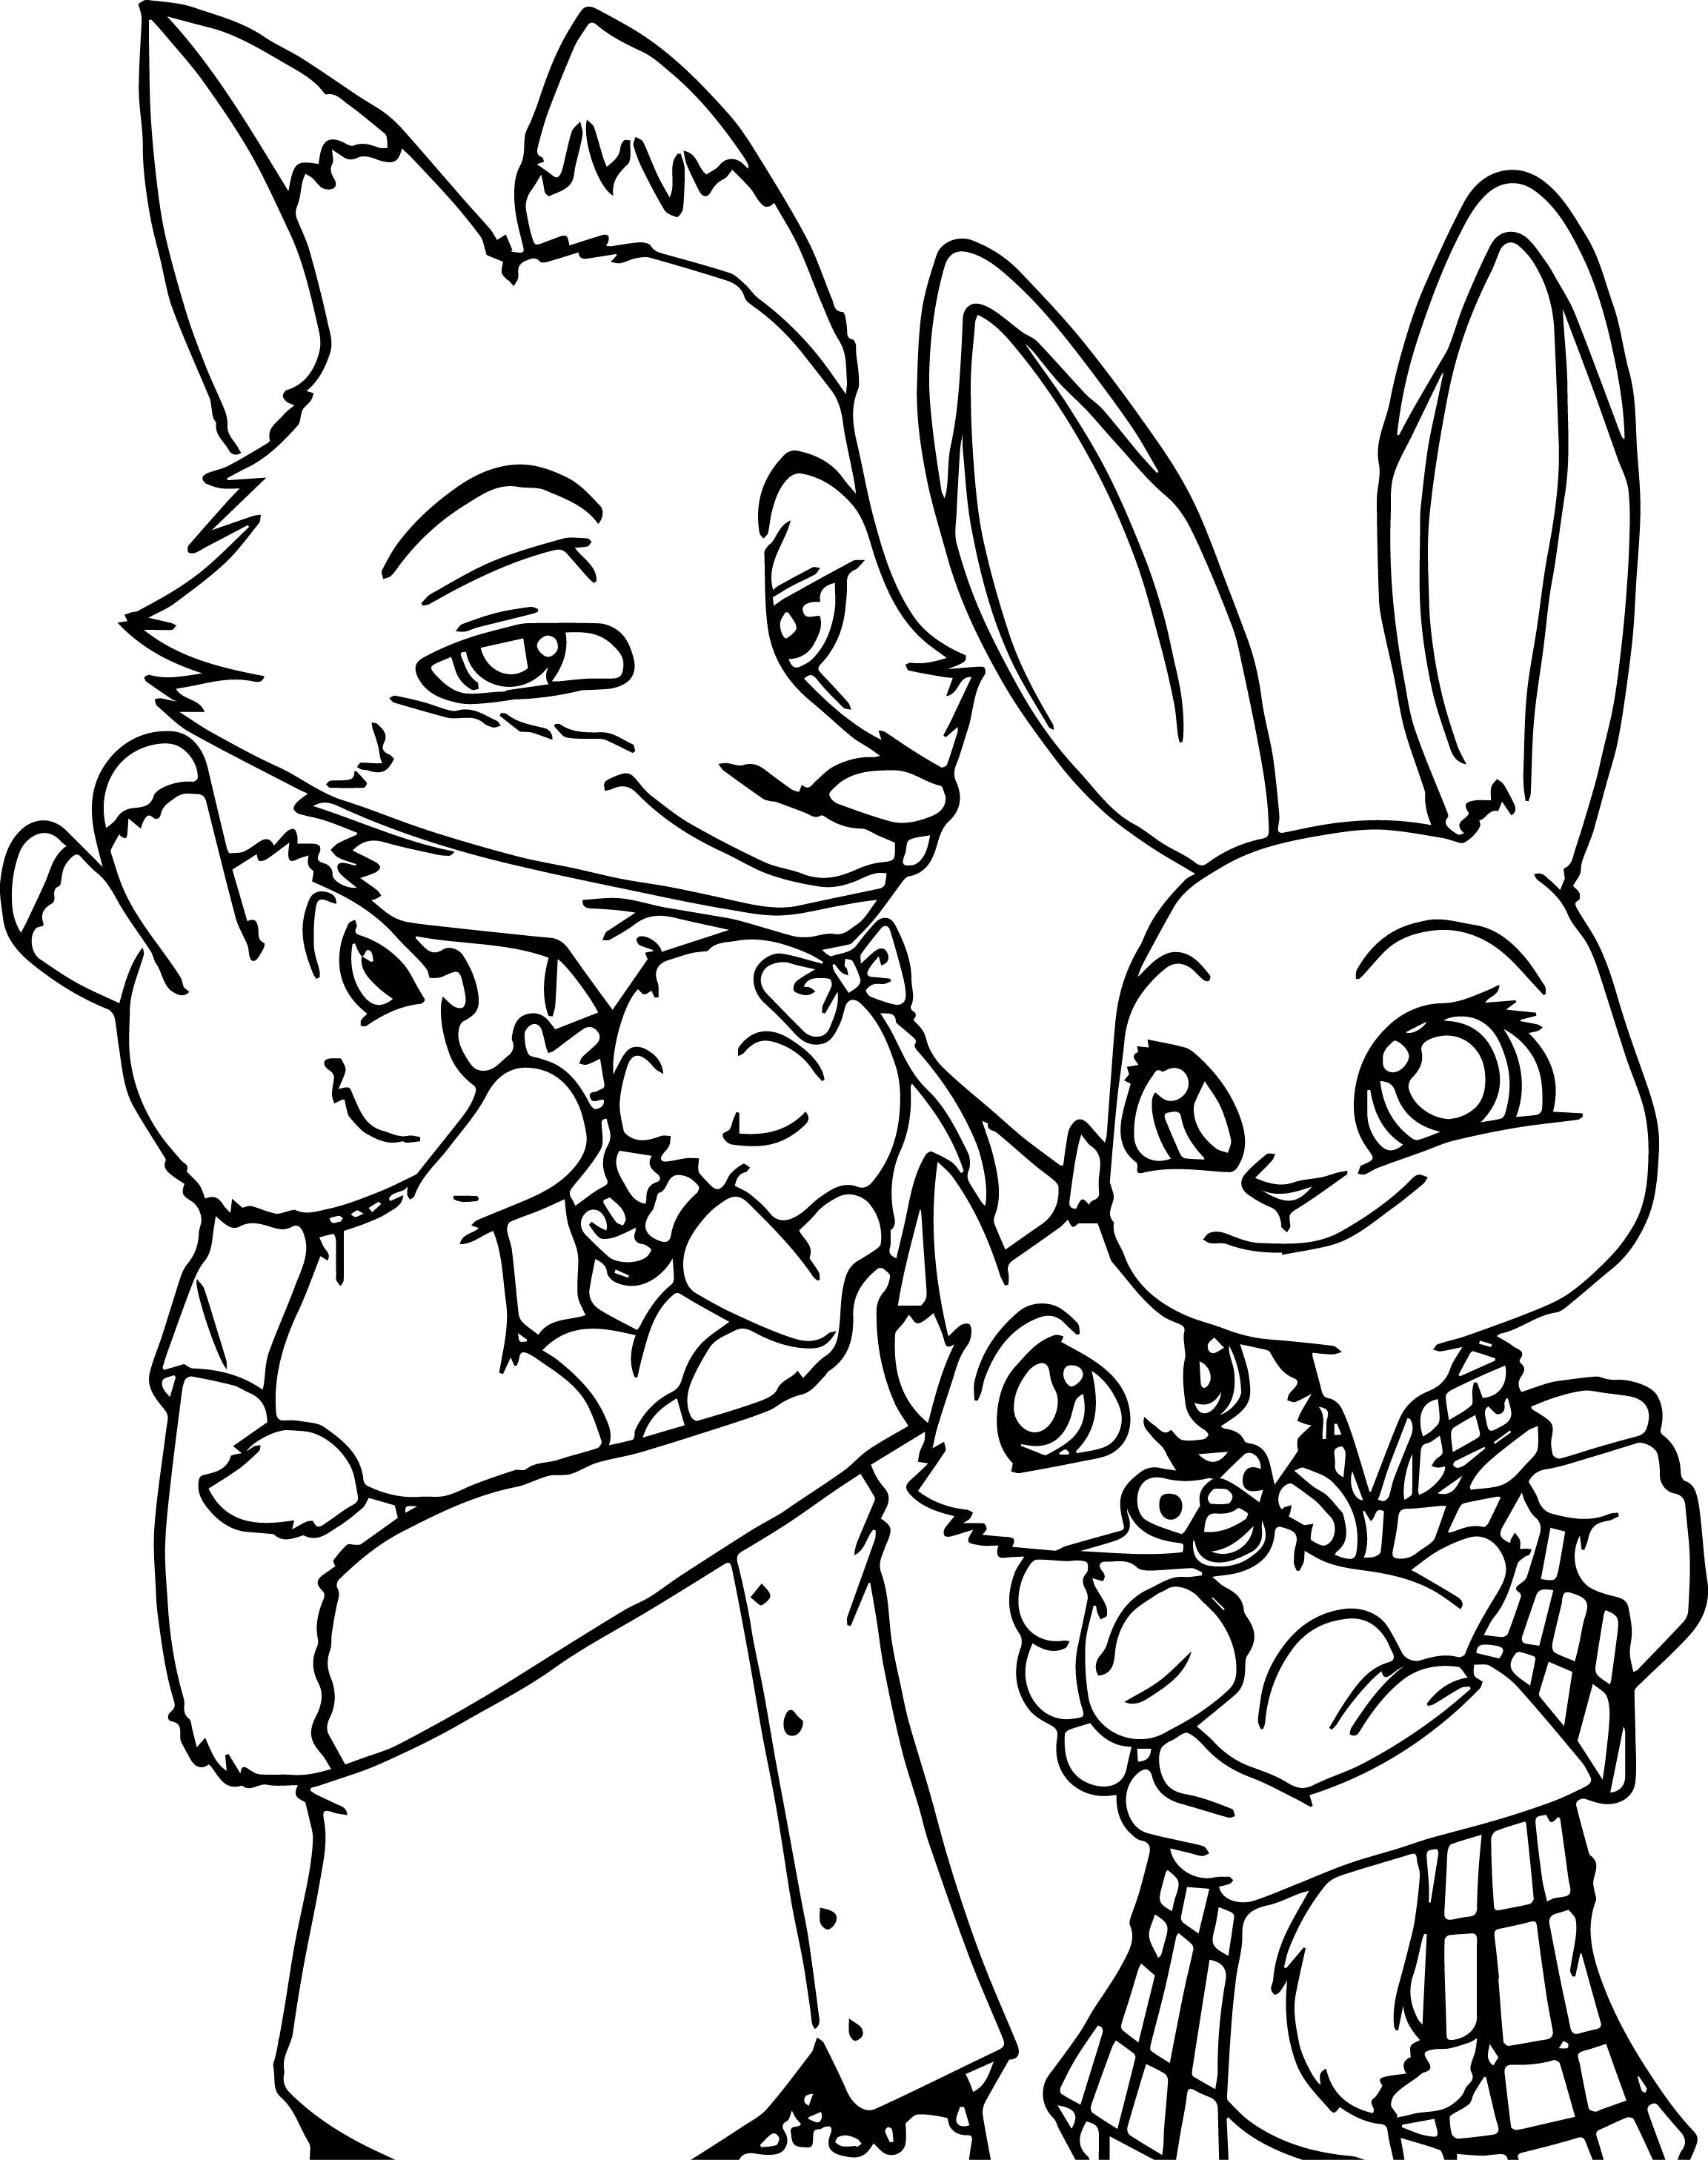 Zootopia Bunny And Fox Family Coloring Page